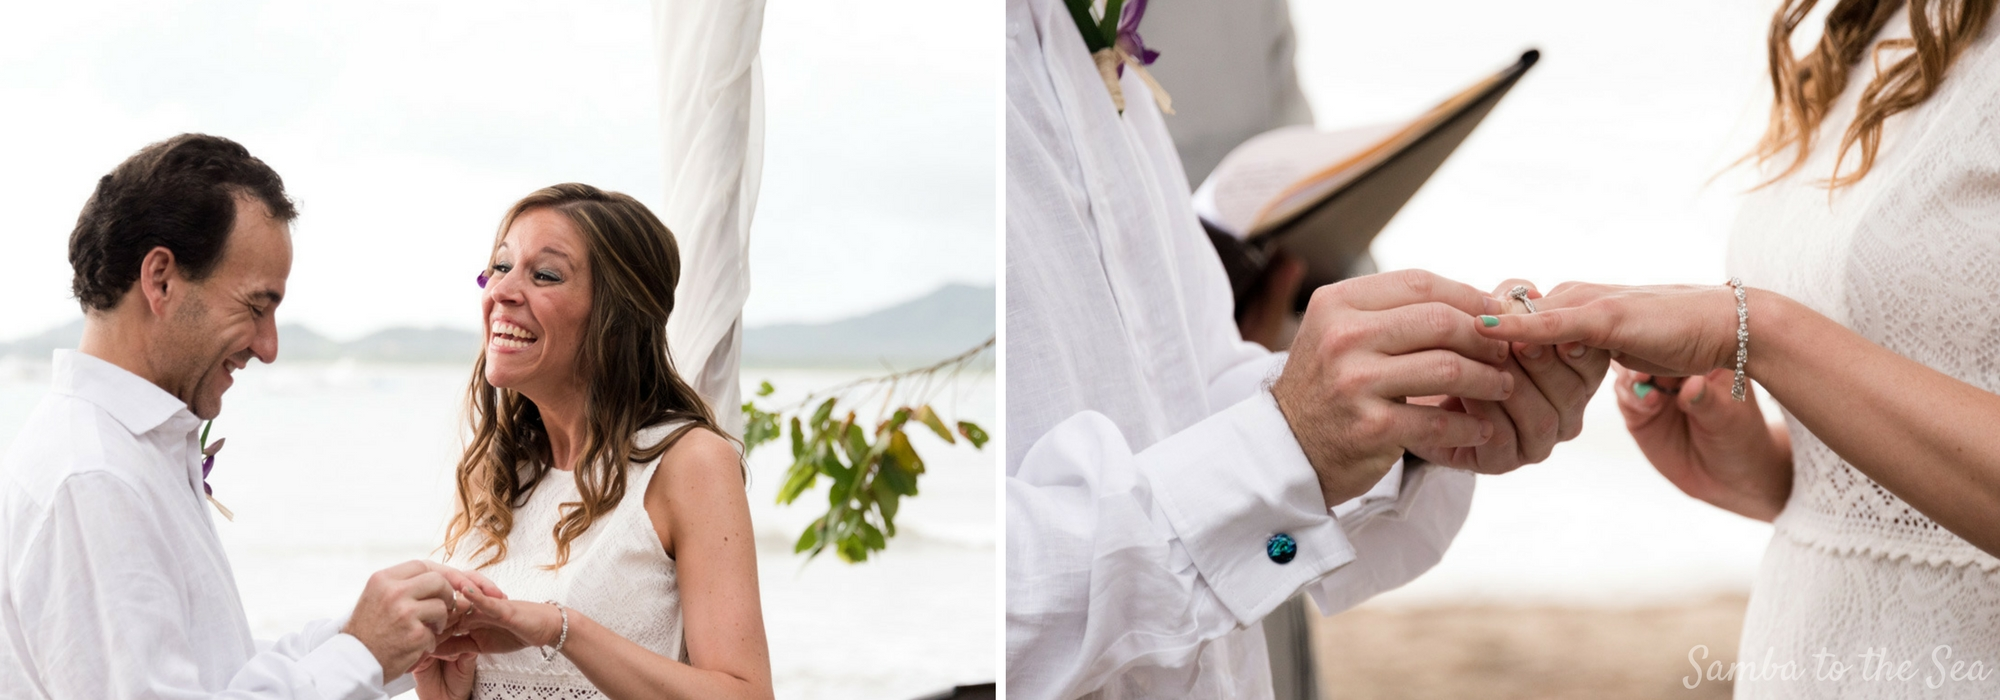 Groom placing ring on his bride during their elopement in Tamarindo, Costa Rica. Photographed by Kristen M. Brown, Samba to the Sea Photography.